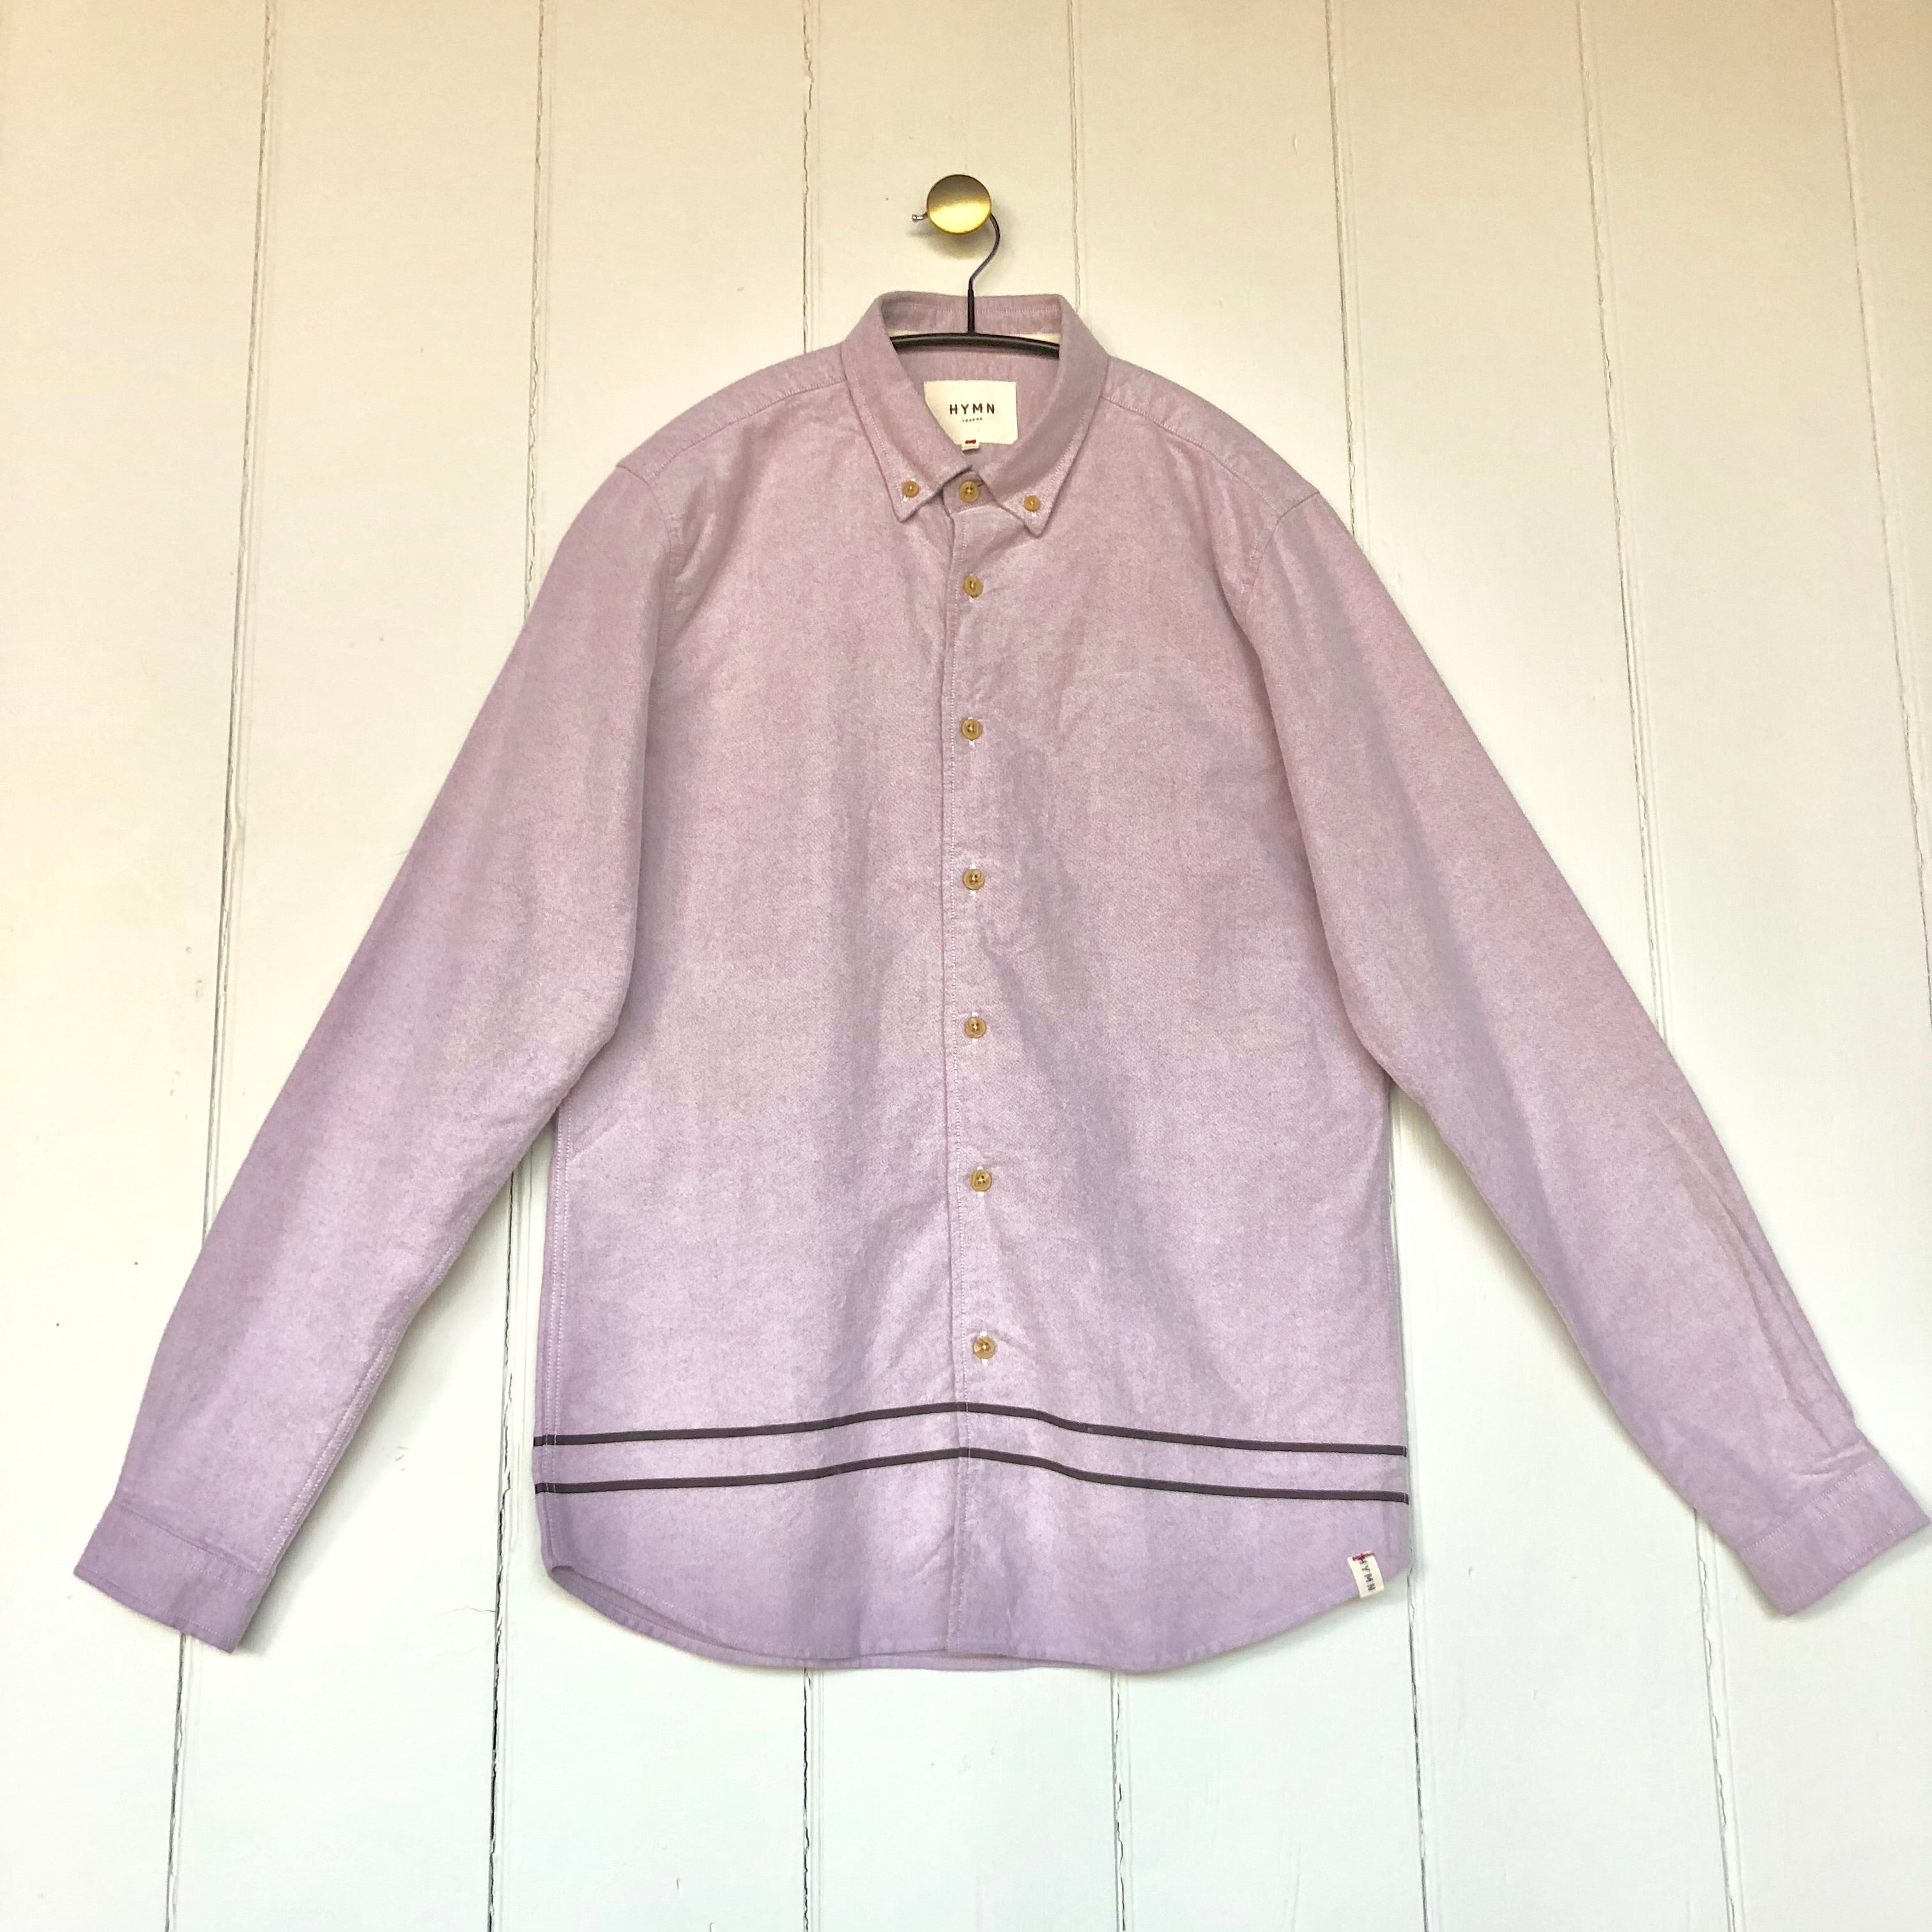 Cedar Brushed Cotton Pink Oxford Shirt